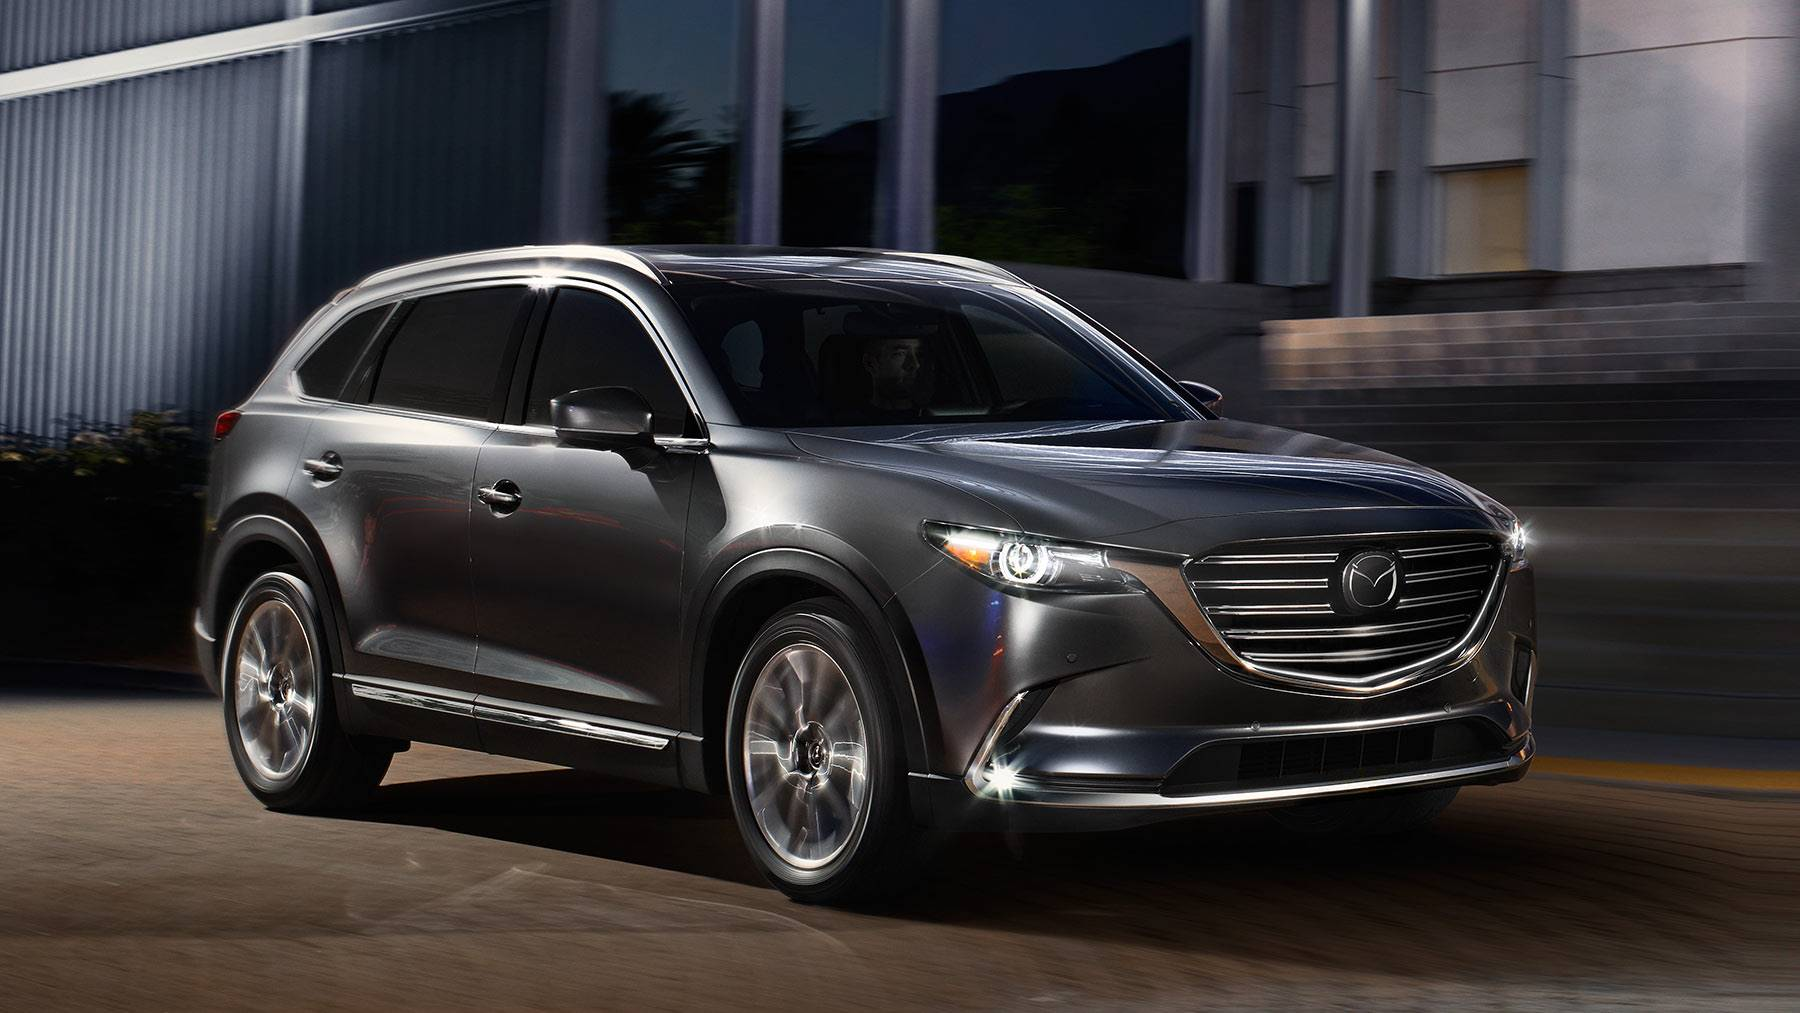 2019 Mazda CX-9 for Sale near Roseville, CA